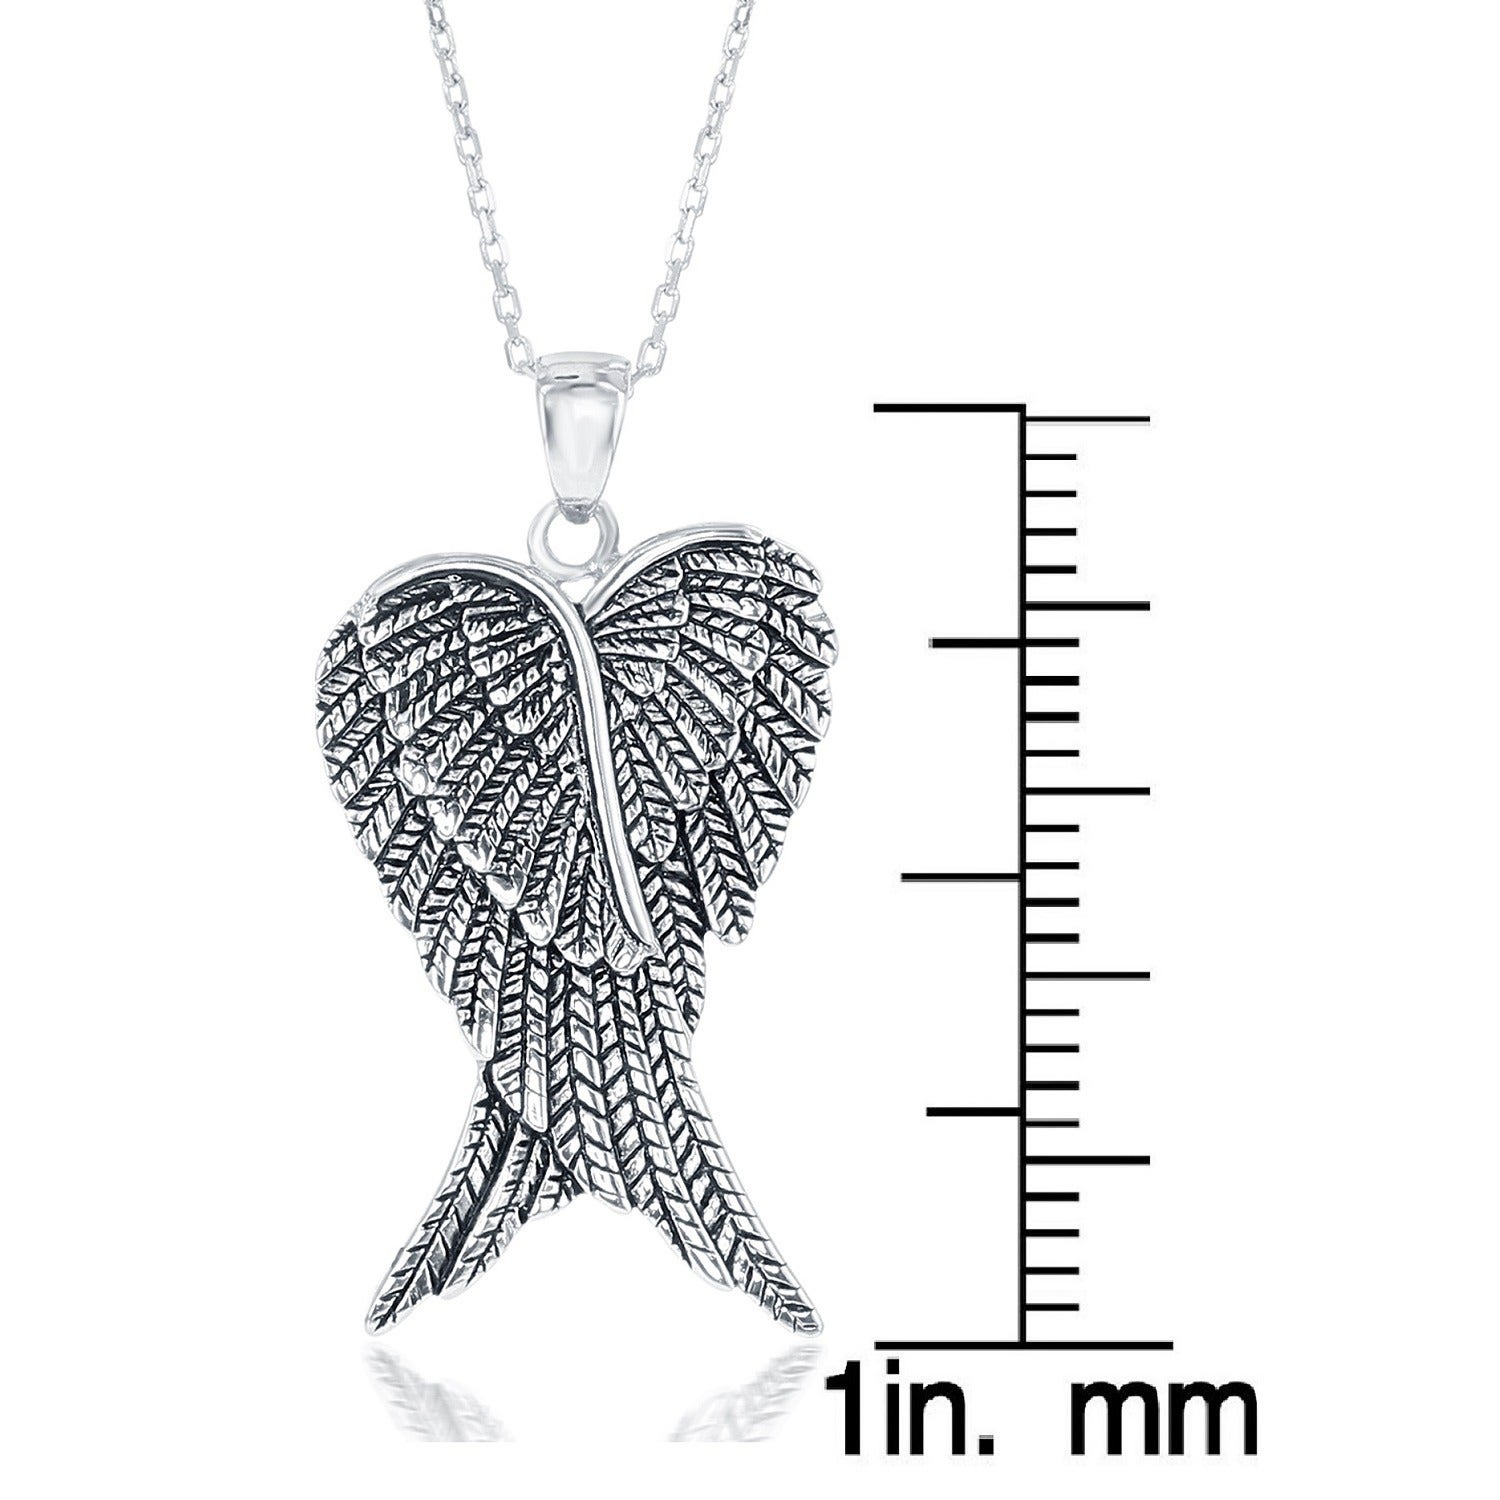 necklace product rose silver maxi wings gift pendant wholesale gold opal accessories for black men girls women christmas angel jewelry